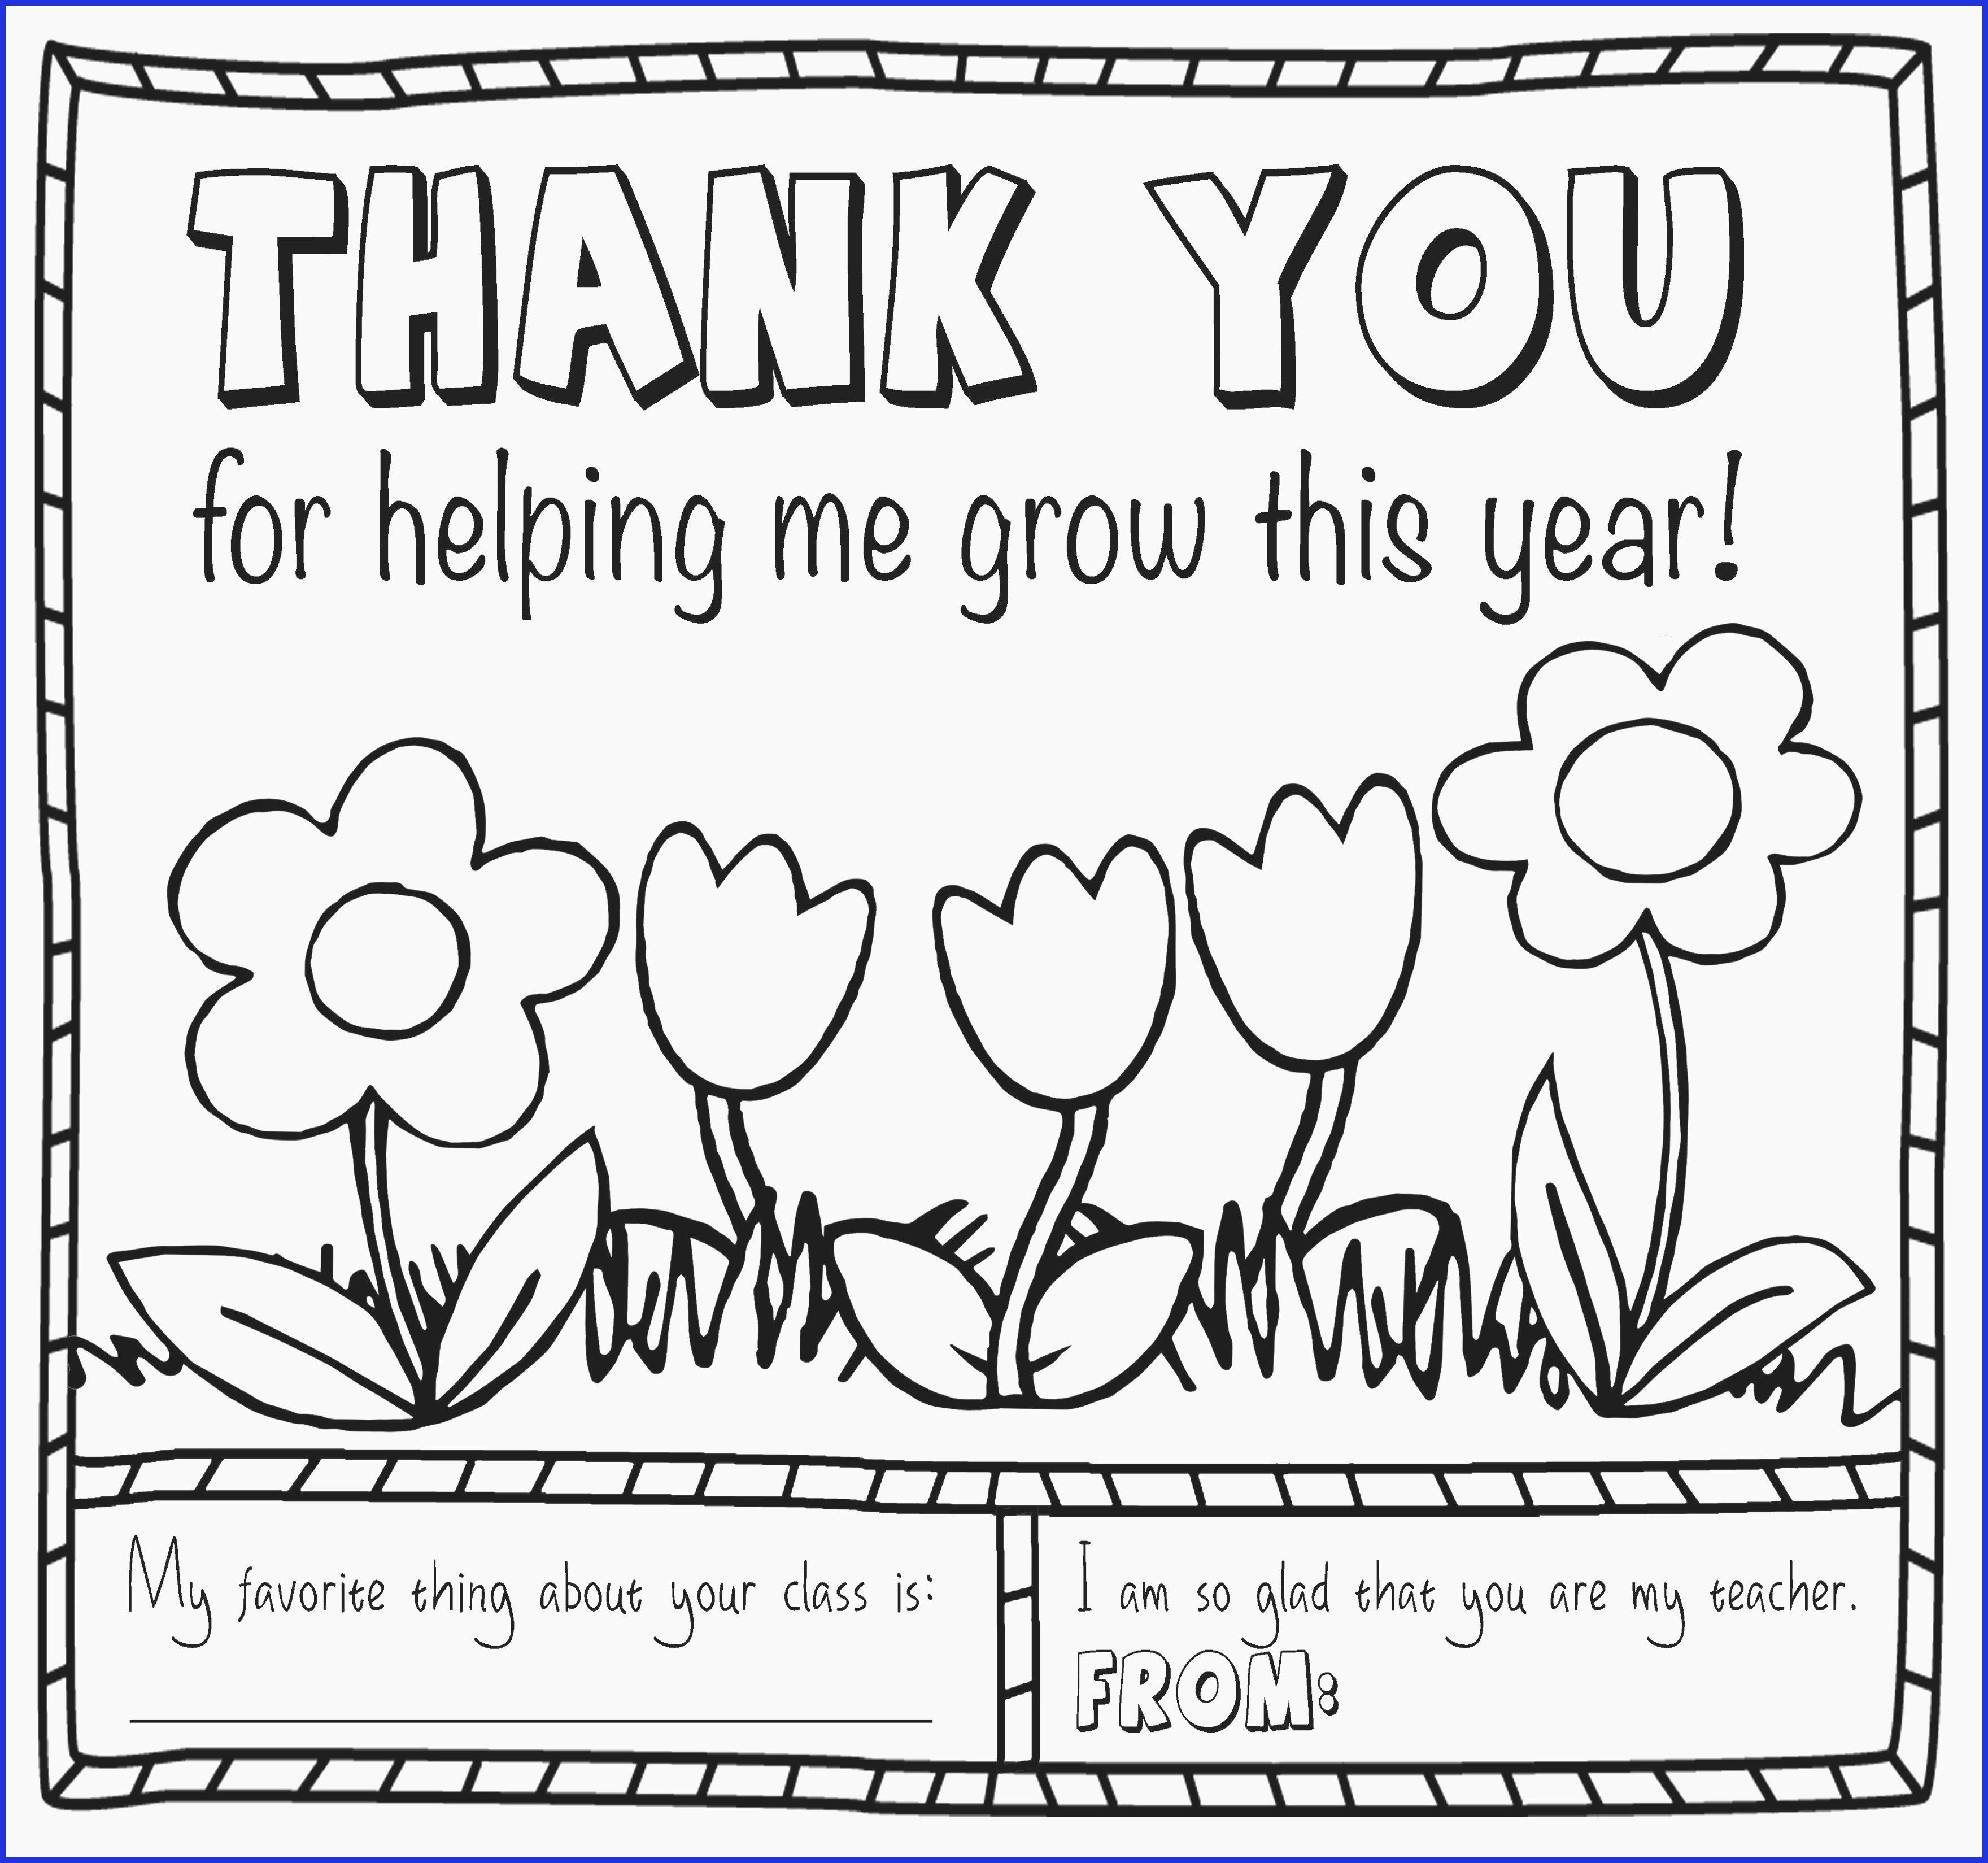 Abc Coloring Pages For Toddlers Fresh Color By Letter Pdf Free Teacher Appreciation Printables Teacher Appreciation Cards Coloring Pages For Teenagers